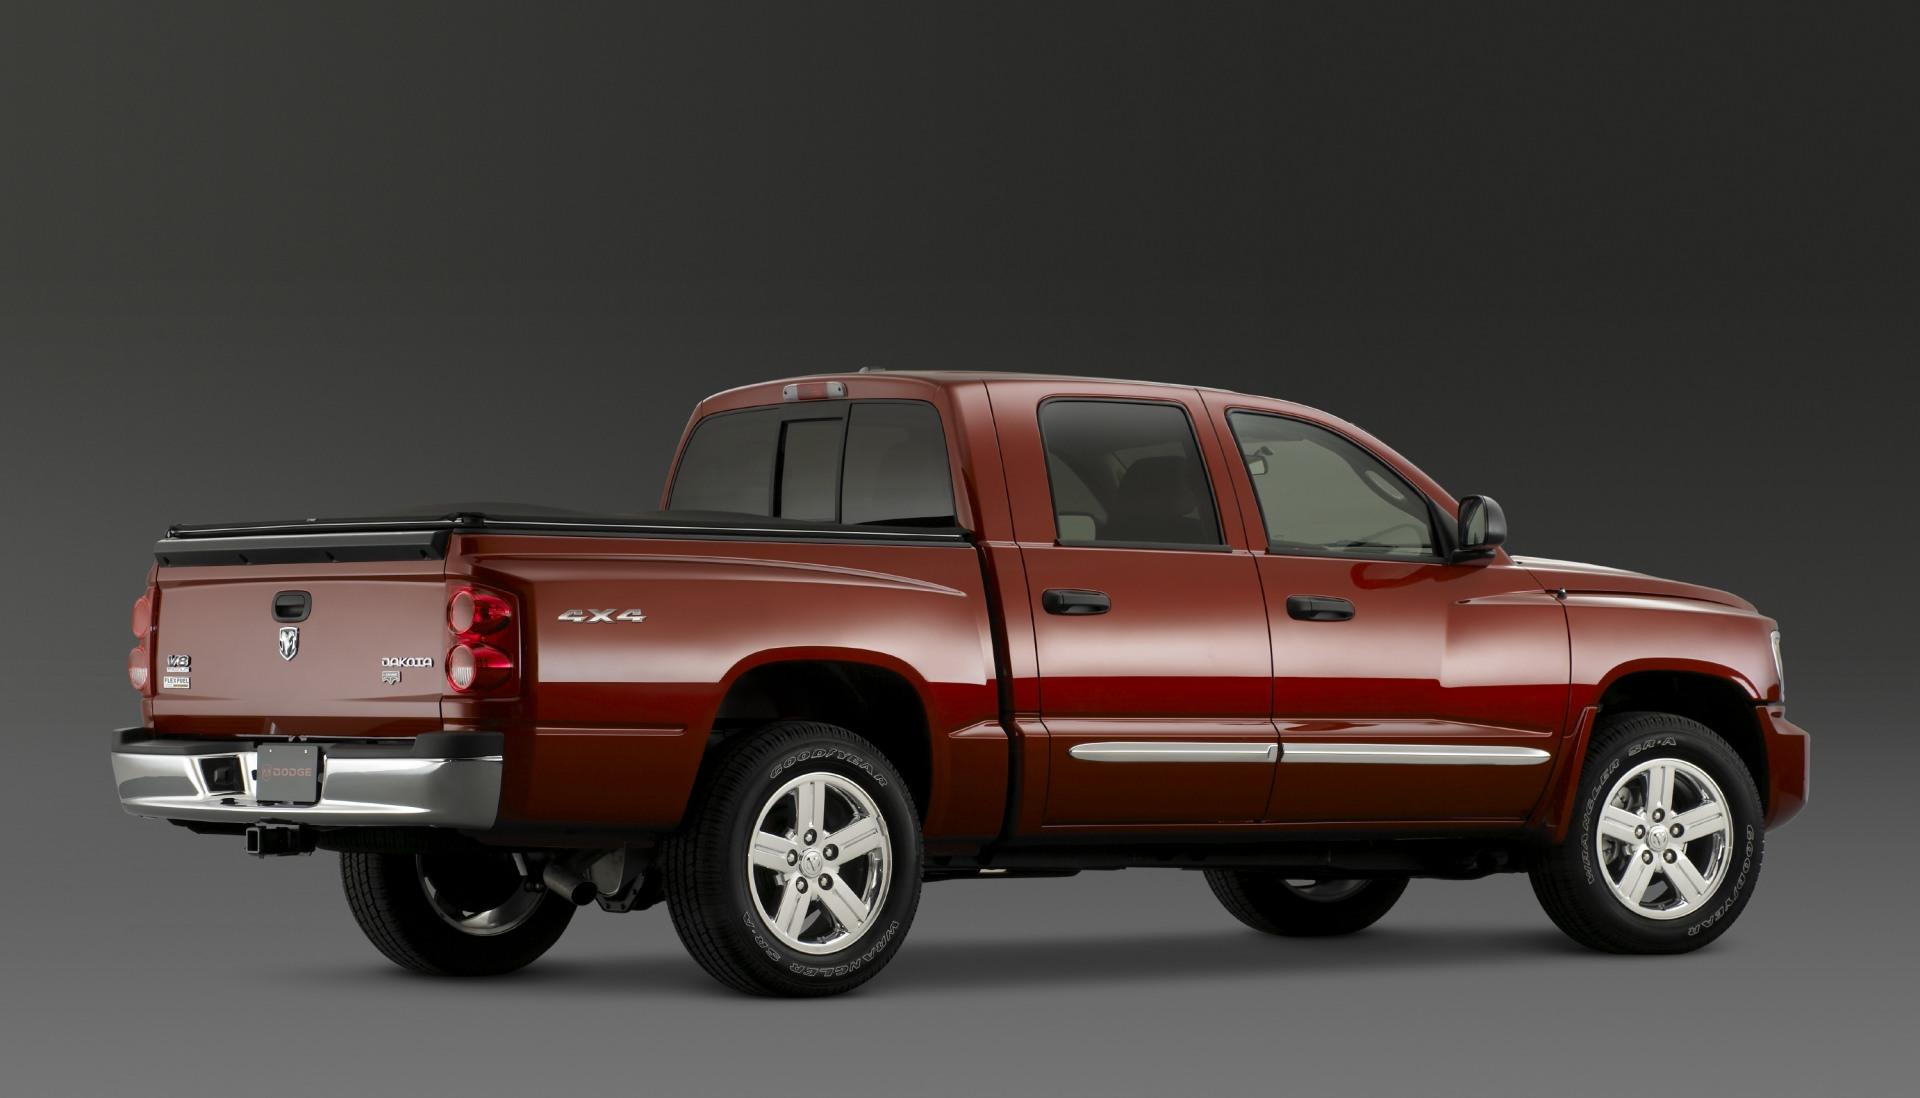 2010 Dodge Dakota - conceptcarz.com